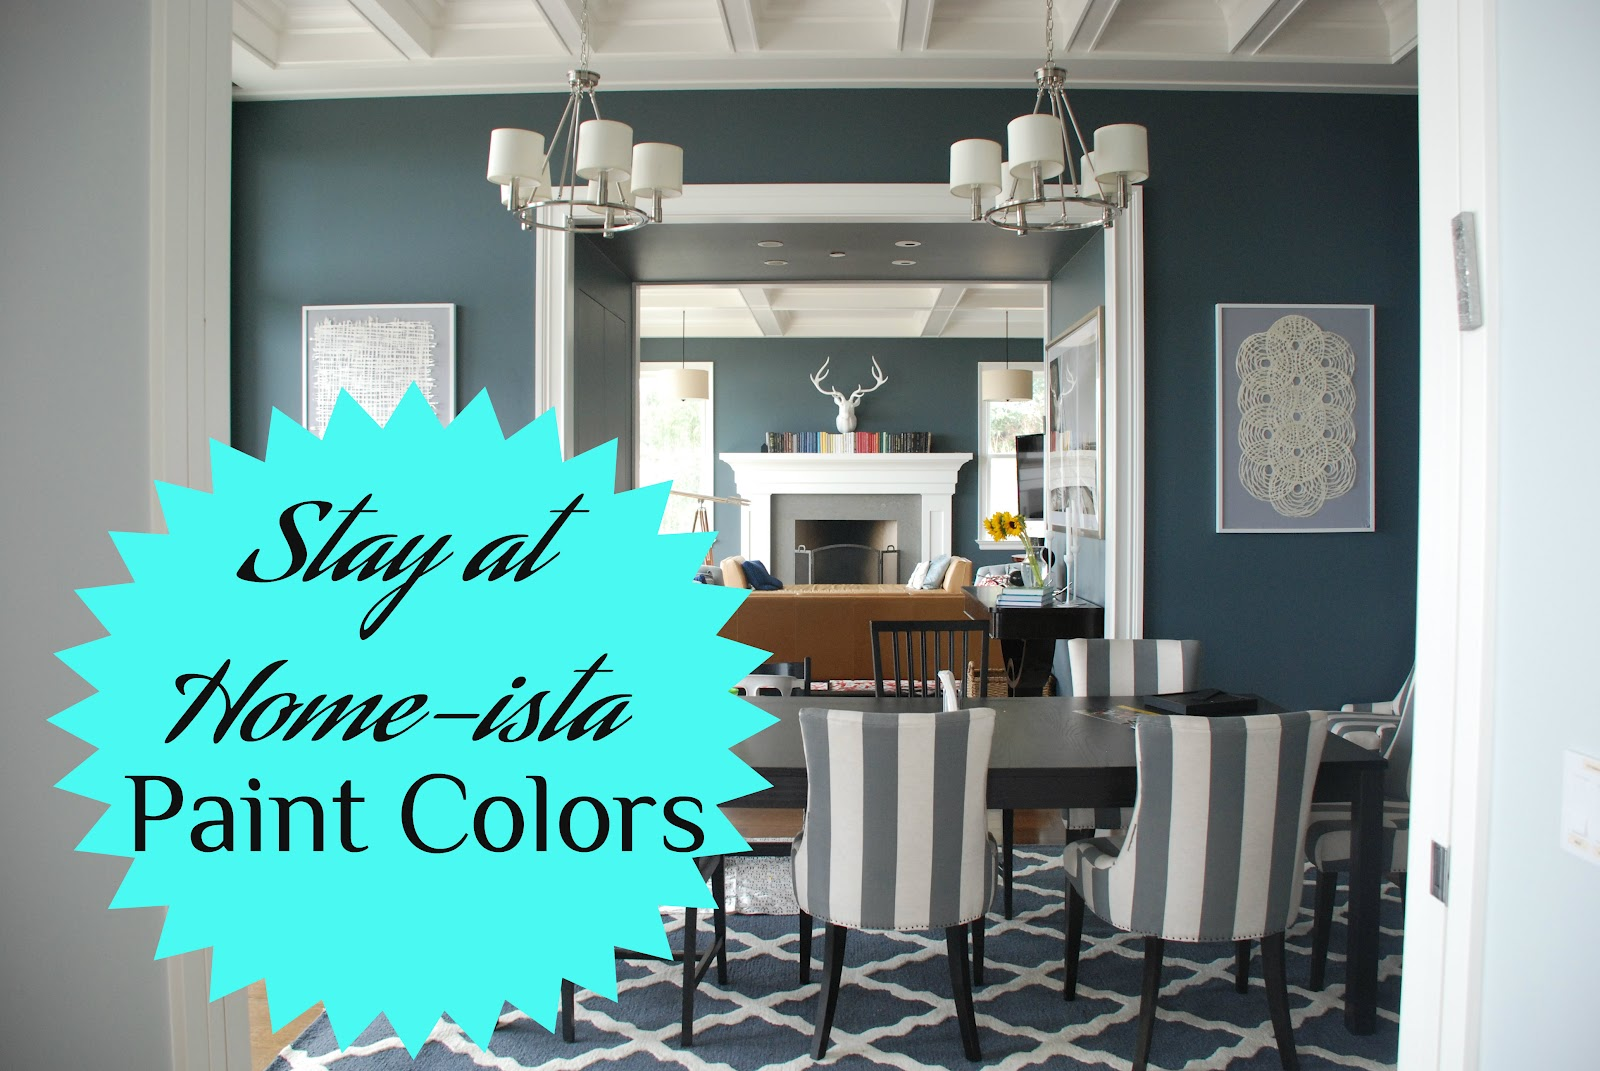 stay at home ista paint colors friday april 13 2012